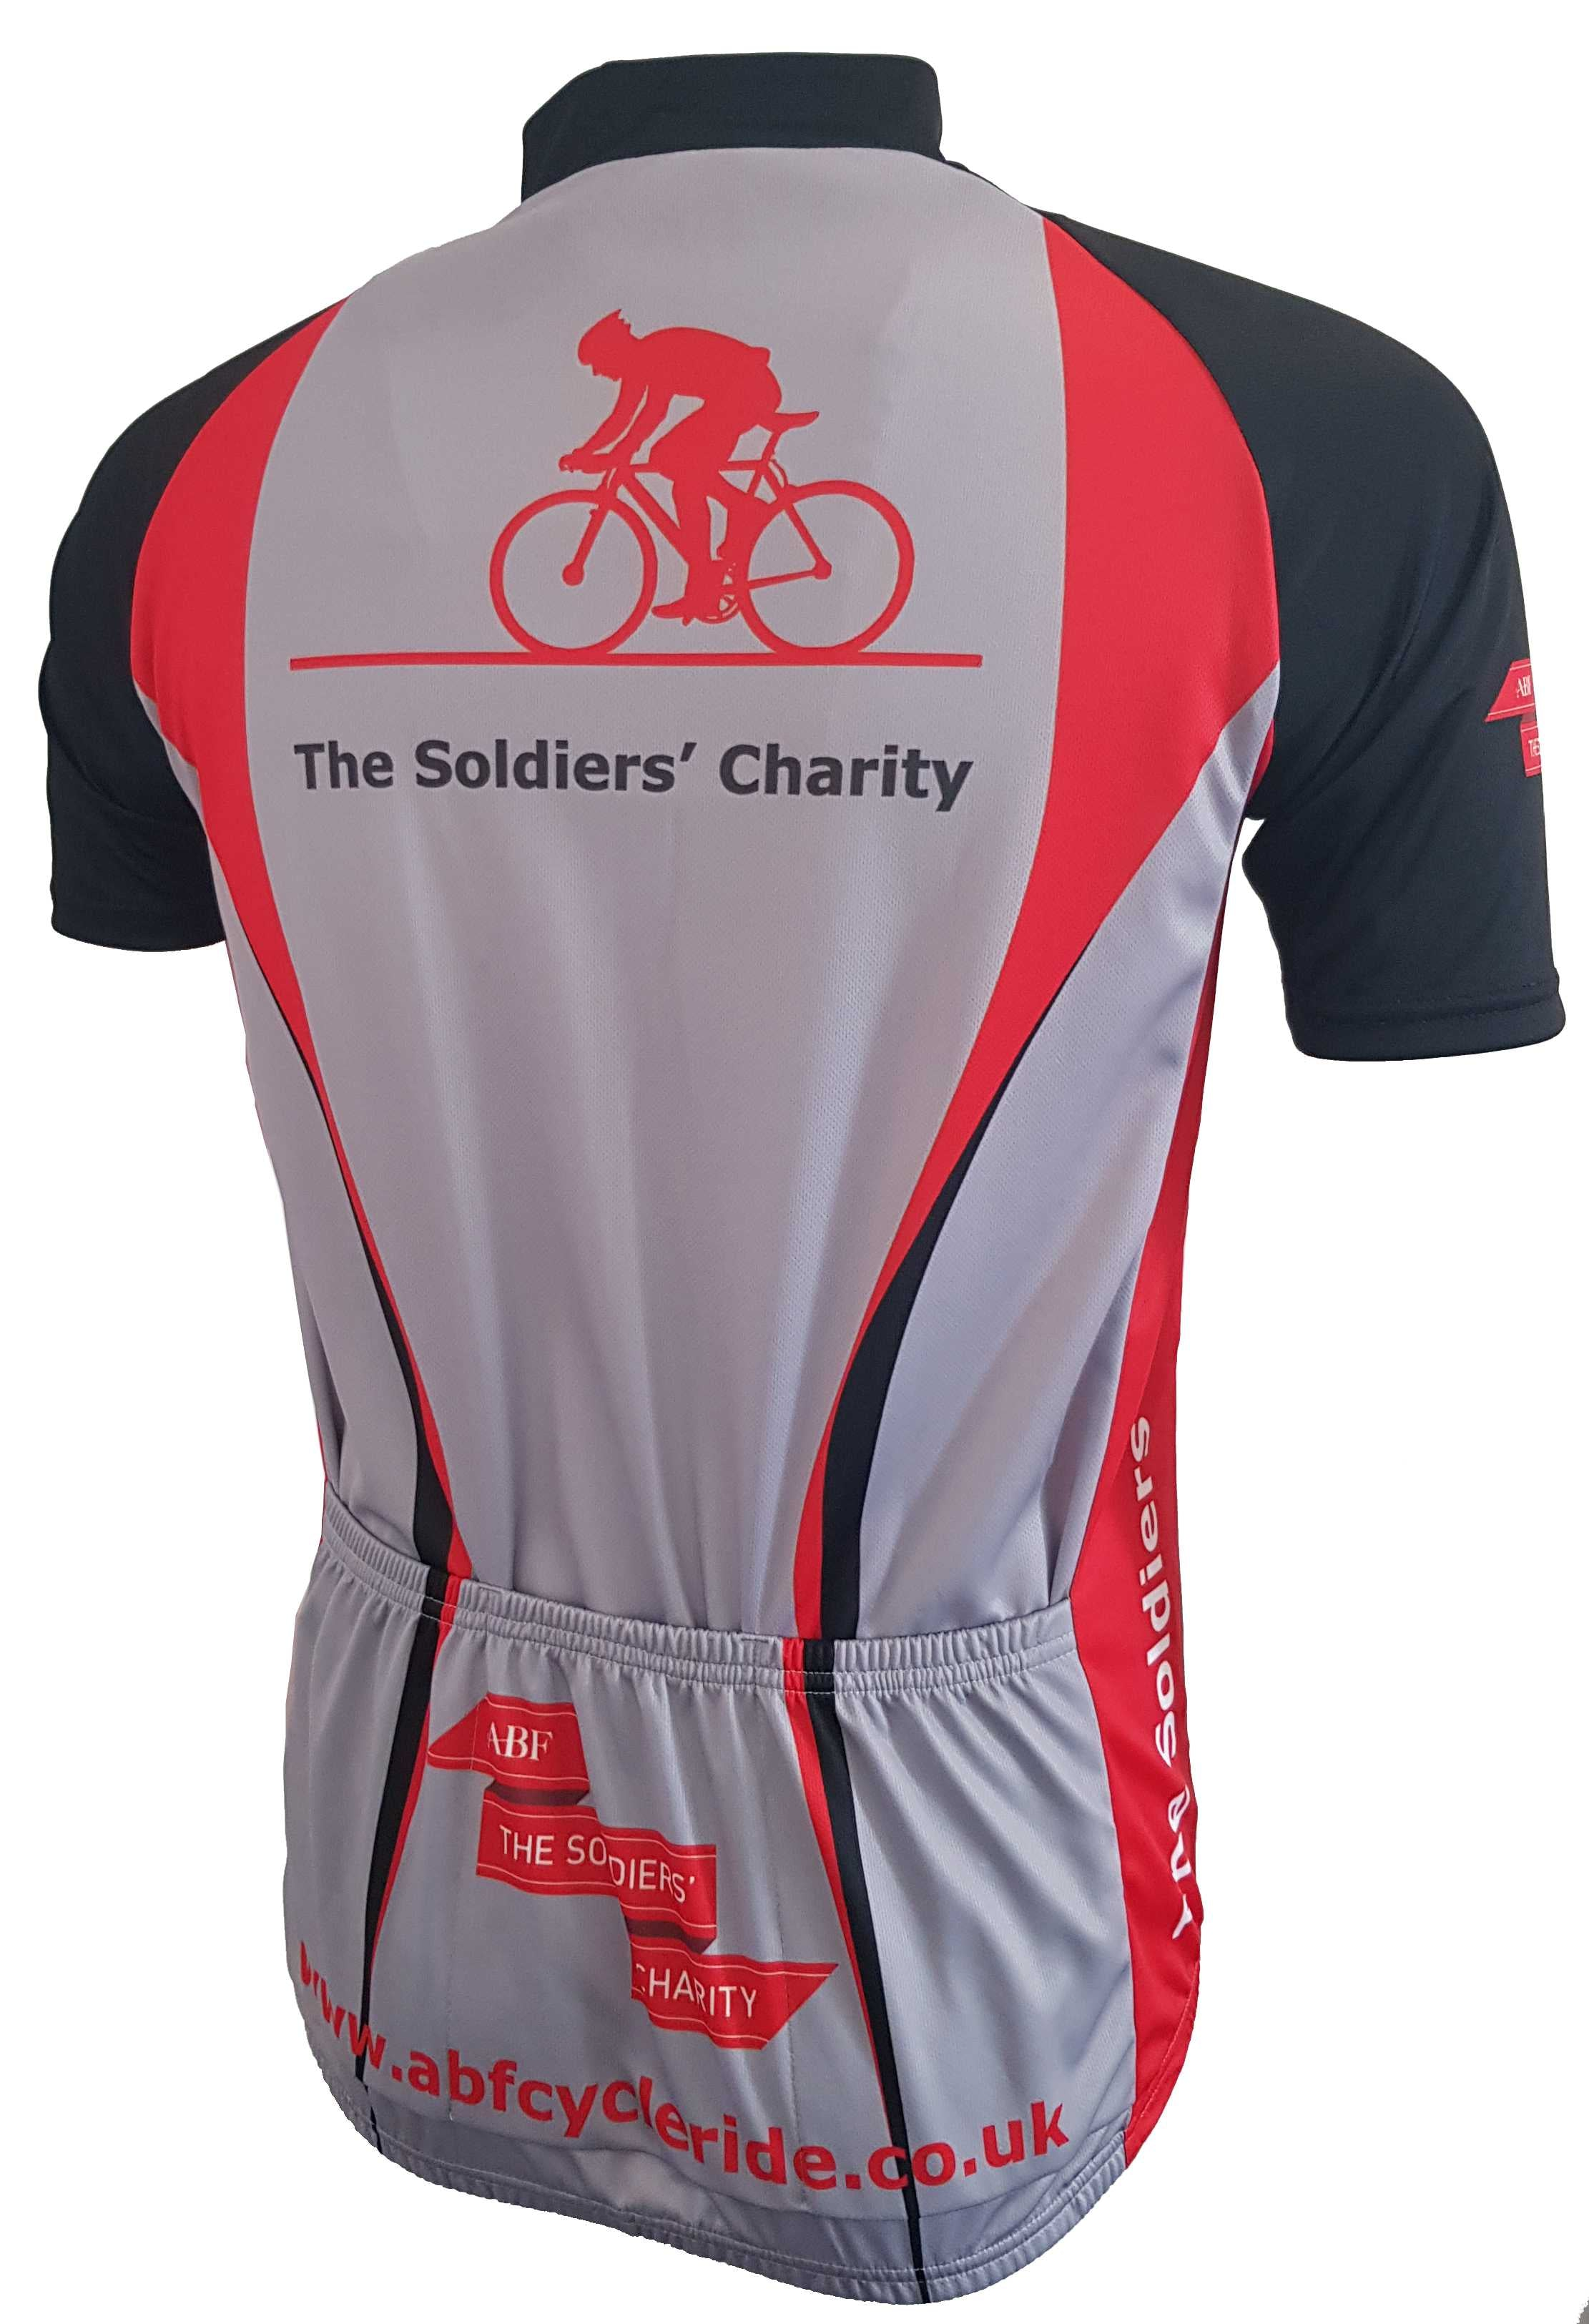 ABF The Soldiers Charity Road Cycling Jersey Back